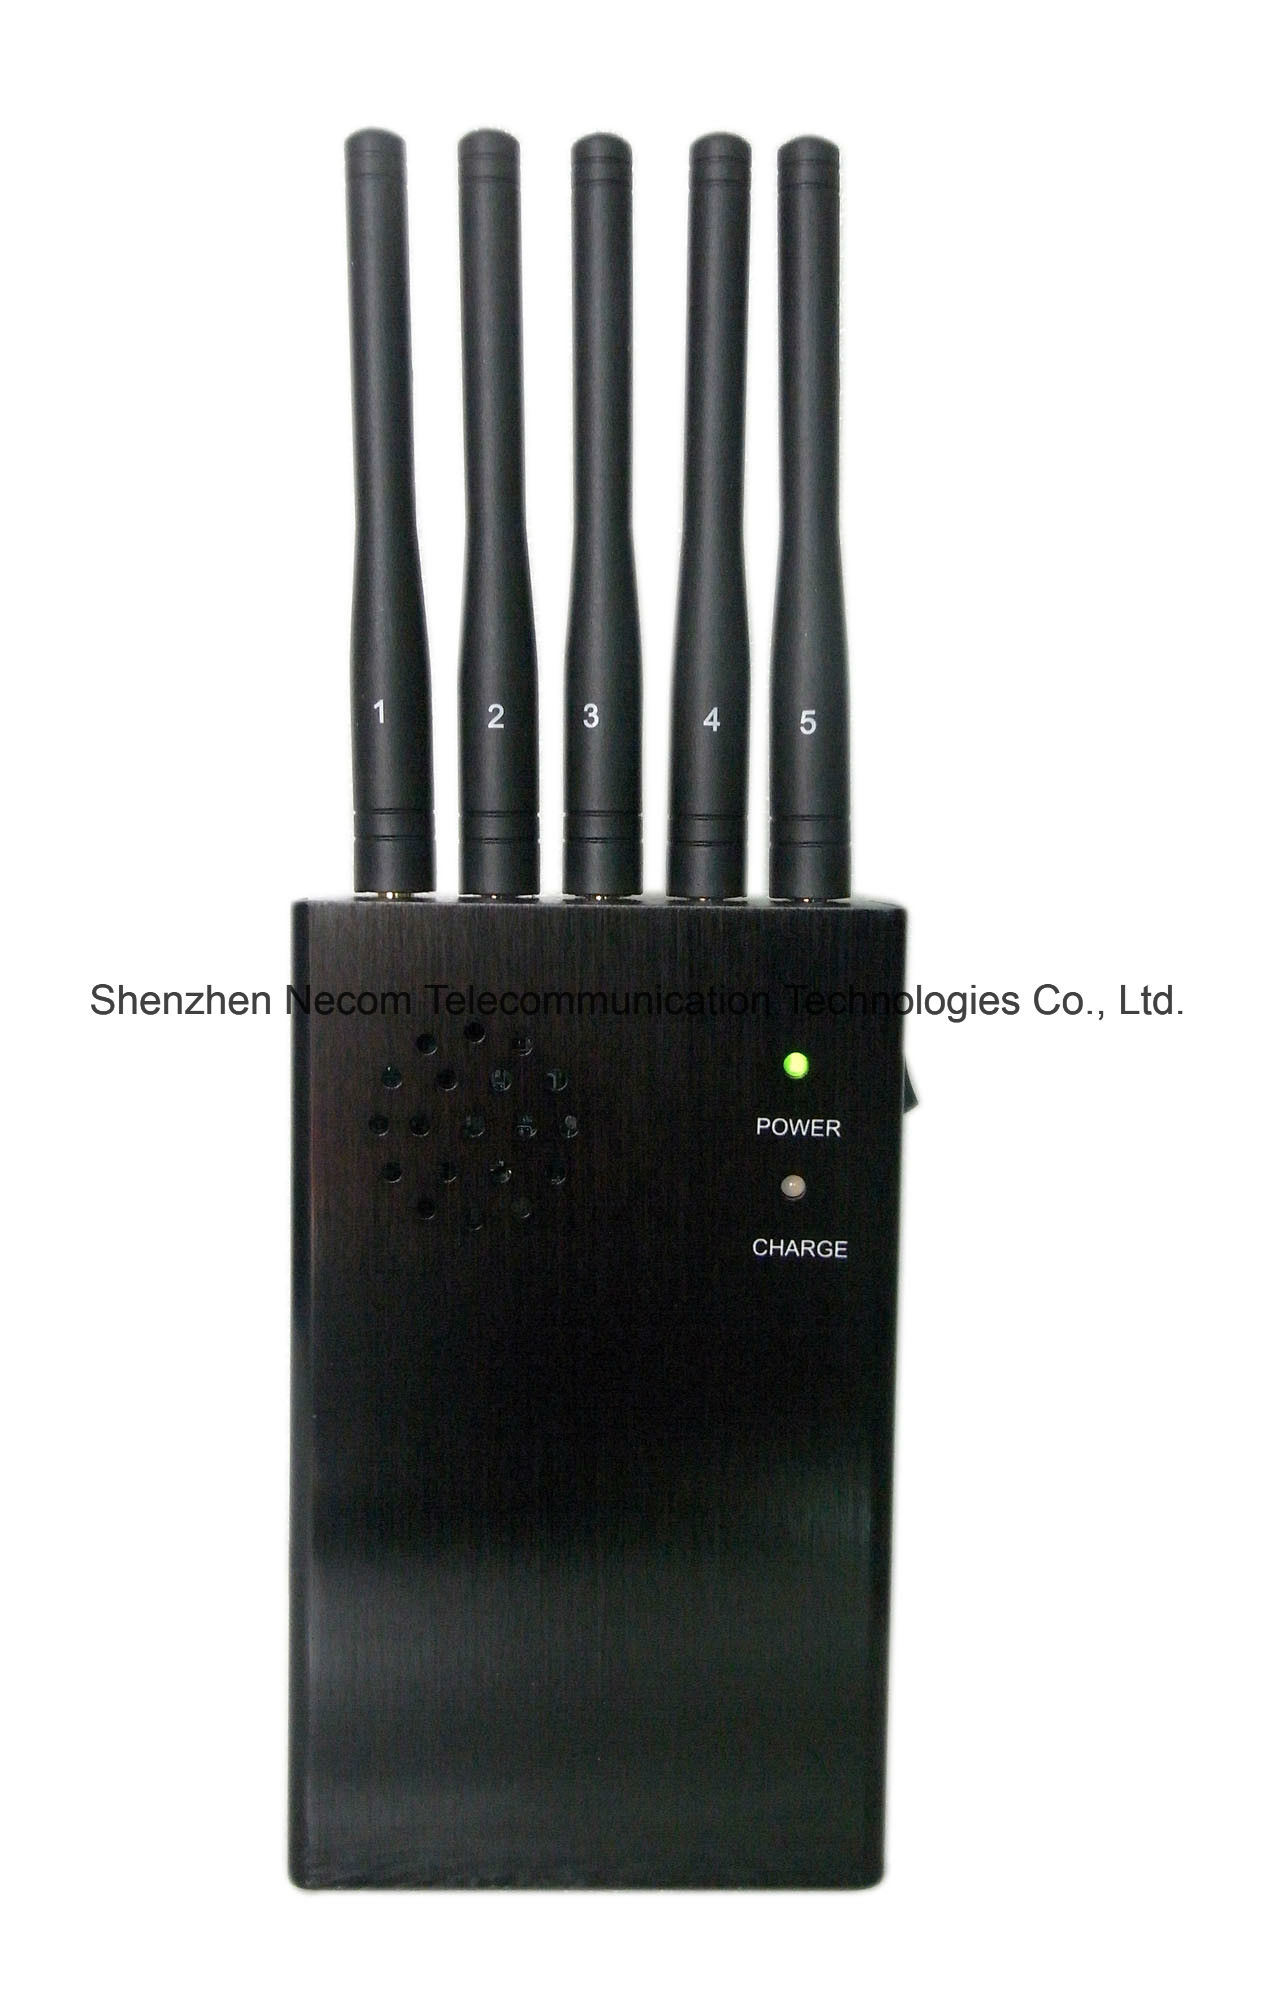 research work on signal jammer - China Cellulare Segnale Jammer, New Handheld 5 Bands 4G Jammer WiFi GPS Lojack Jammer with Car Charger, Portable Mobile Phone & Wi-Fi/Bluetooth Jammer - China 5 Band Signal Blockers, Five Antennas Jammers